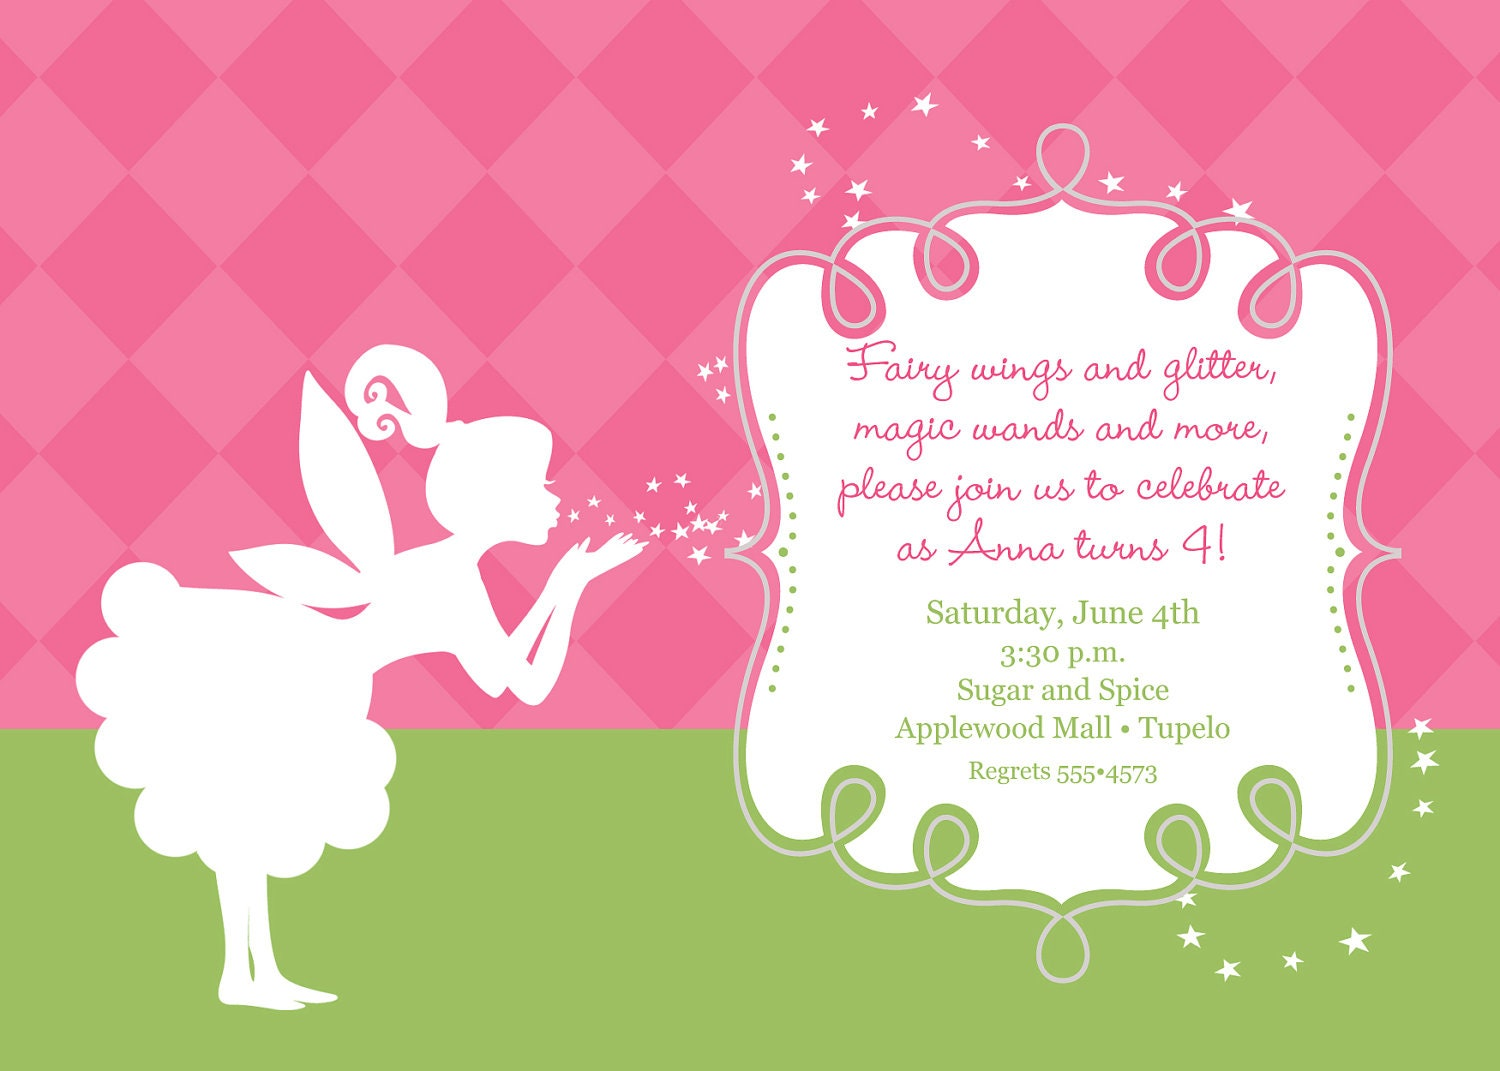 Pixies and Fairy Wings Birthday Invitation PRINTABLE